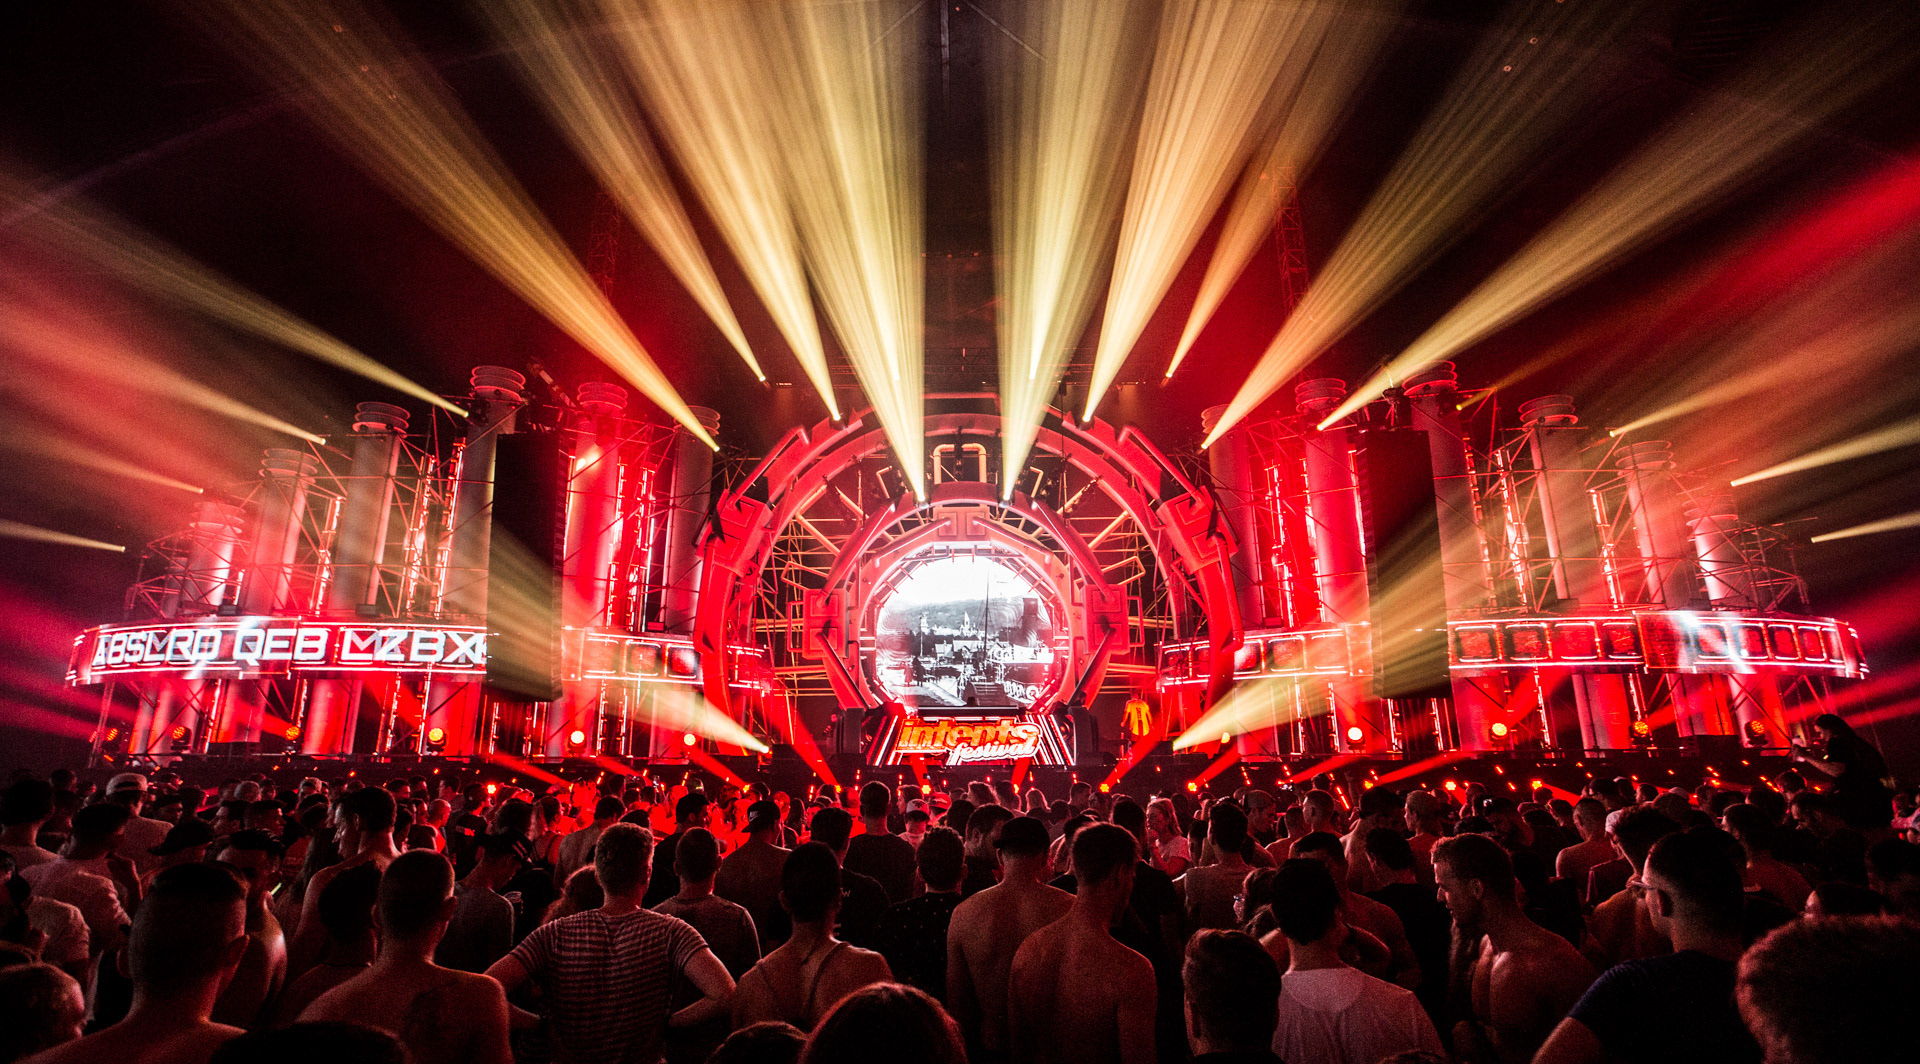 Stage Design - Intents Festival 2018 - Indoor Mainstage on